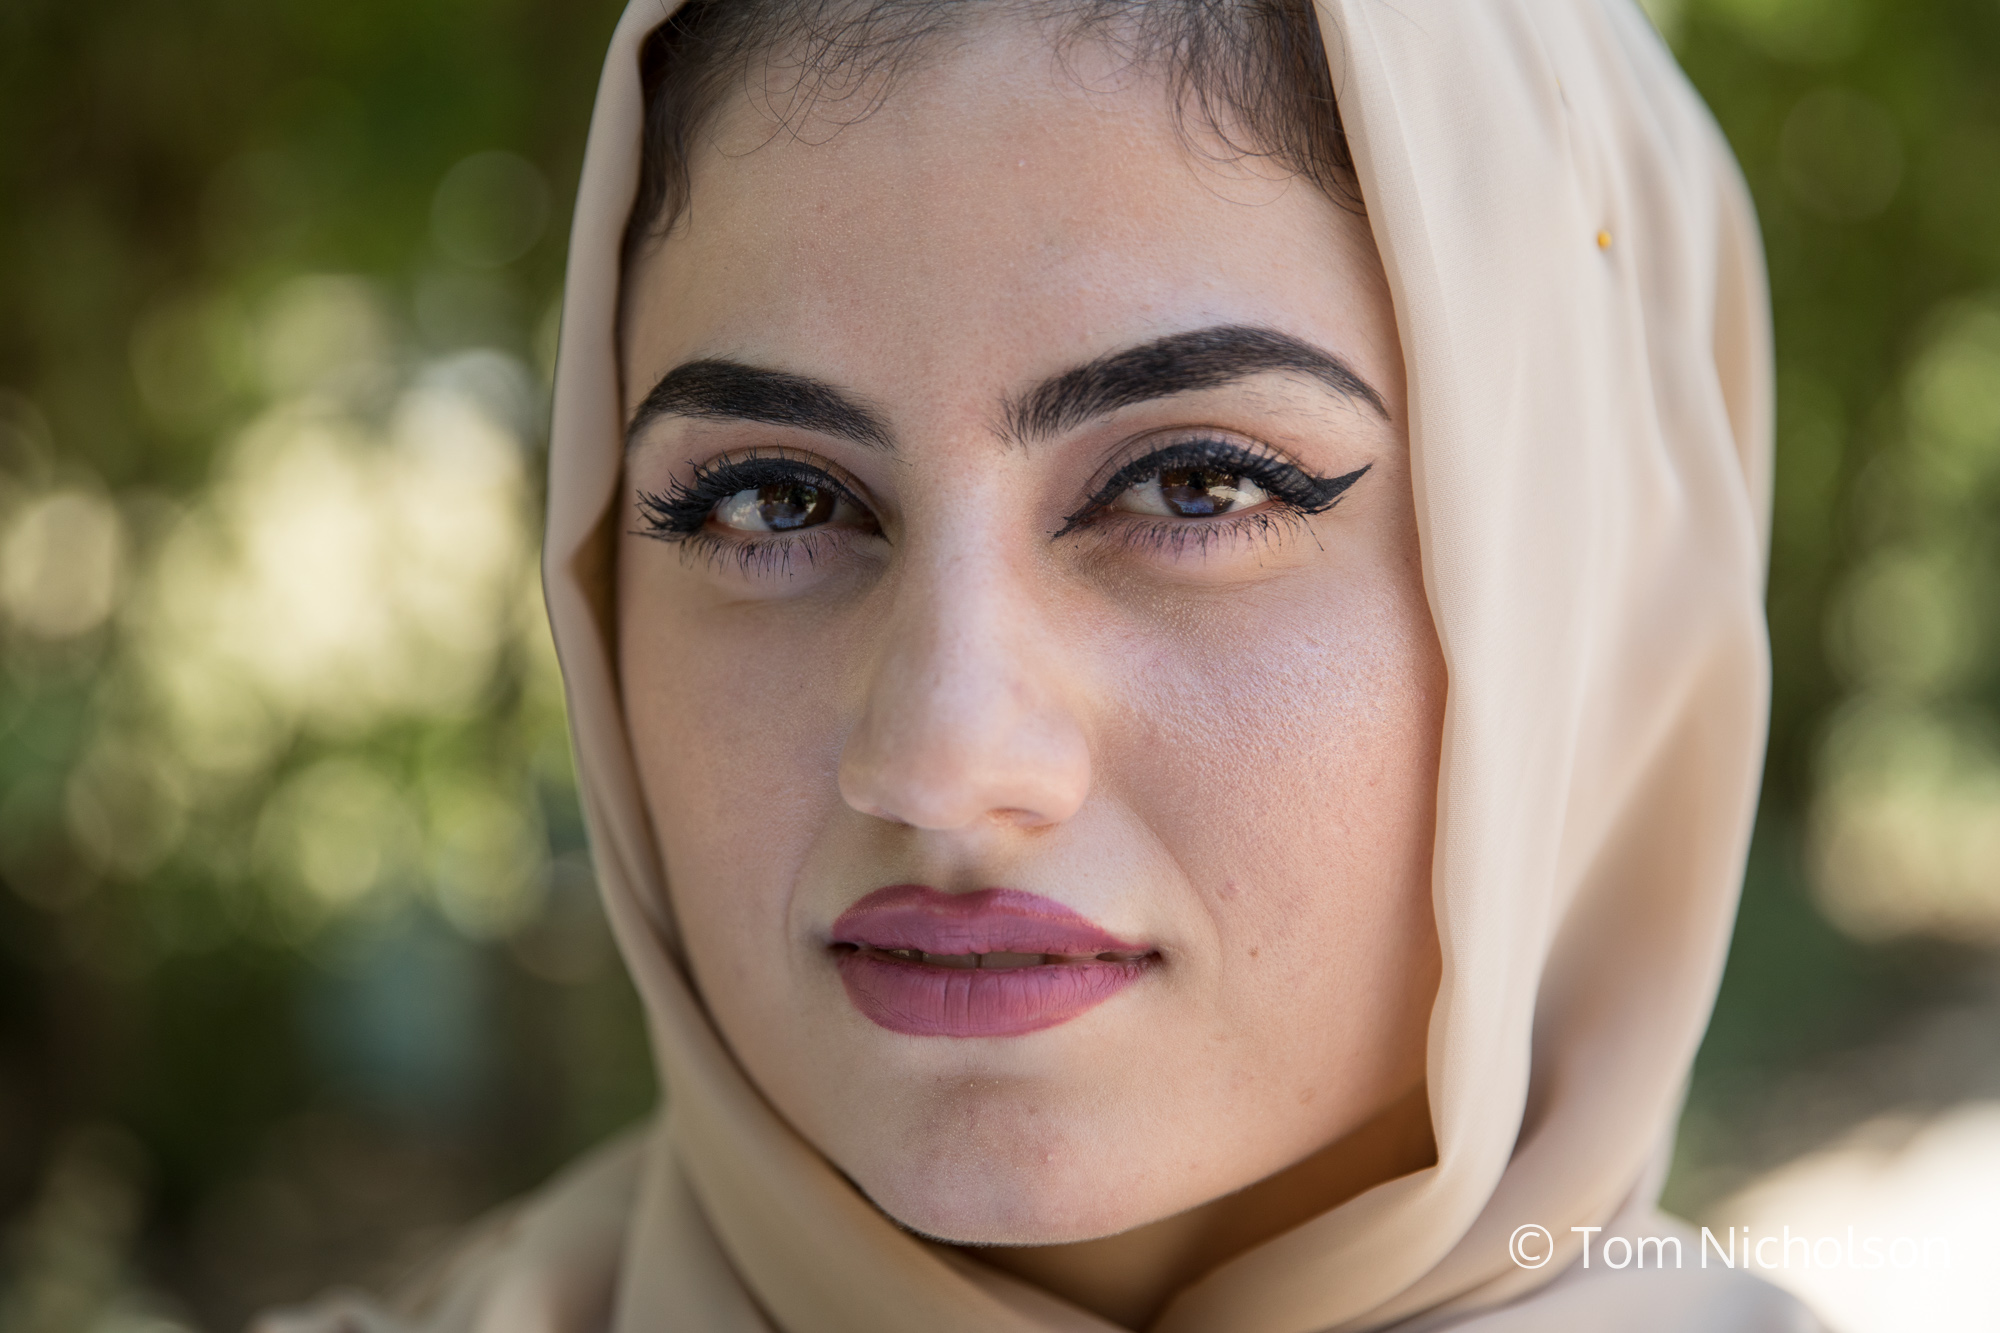 """©2018 Tom Nicholson. 27/06/2018. Erbil, Iraq. Payam Yassin, age 20, from Iraqi-Kurdistan is a Civil Engineering student. She said: """"In this country humans don't have rights: No electricity. No water. No basics to live a good life. This is why the youth are hopeless. When they have a dream they don't follow it."""" Despite this, Payam is optimistic about her future. At university, she developed a 'smart stick' for blind people, which uses technology to sense obstacles ahead. She explained: """"everything in Kurdistan is imported...If we start by making small things we can develop our country."""" She also works on the the 'Boost Your Beliefs' (BYB) counter-radicalisation programme. The programme focuses on countering online radicalisation by storytelling, campaigning and sending alternative messages. It aims to direct young people to education and job opportunities, paving the way for a future workforce and subsequently reducing the risk of future radicalisation and violent extremism."""